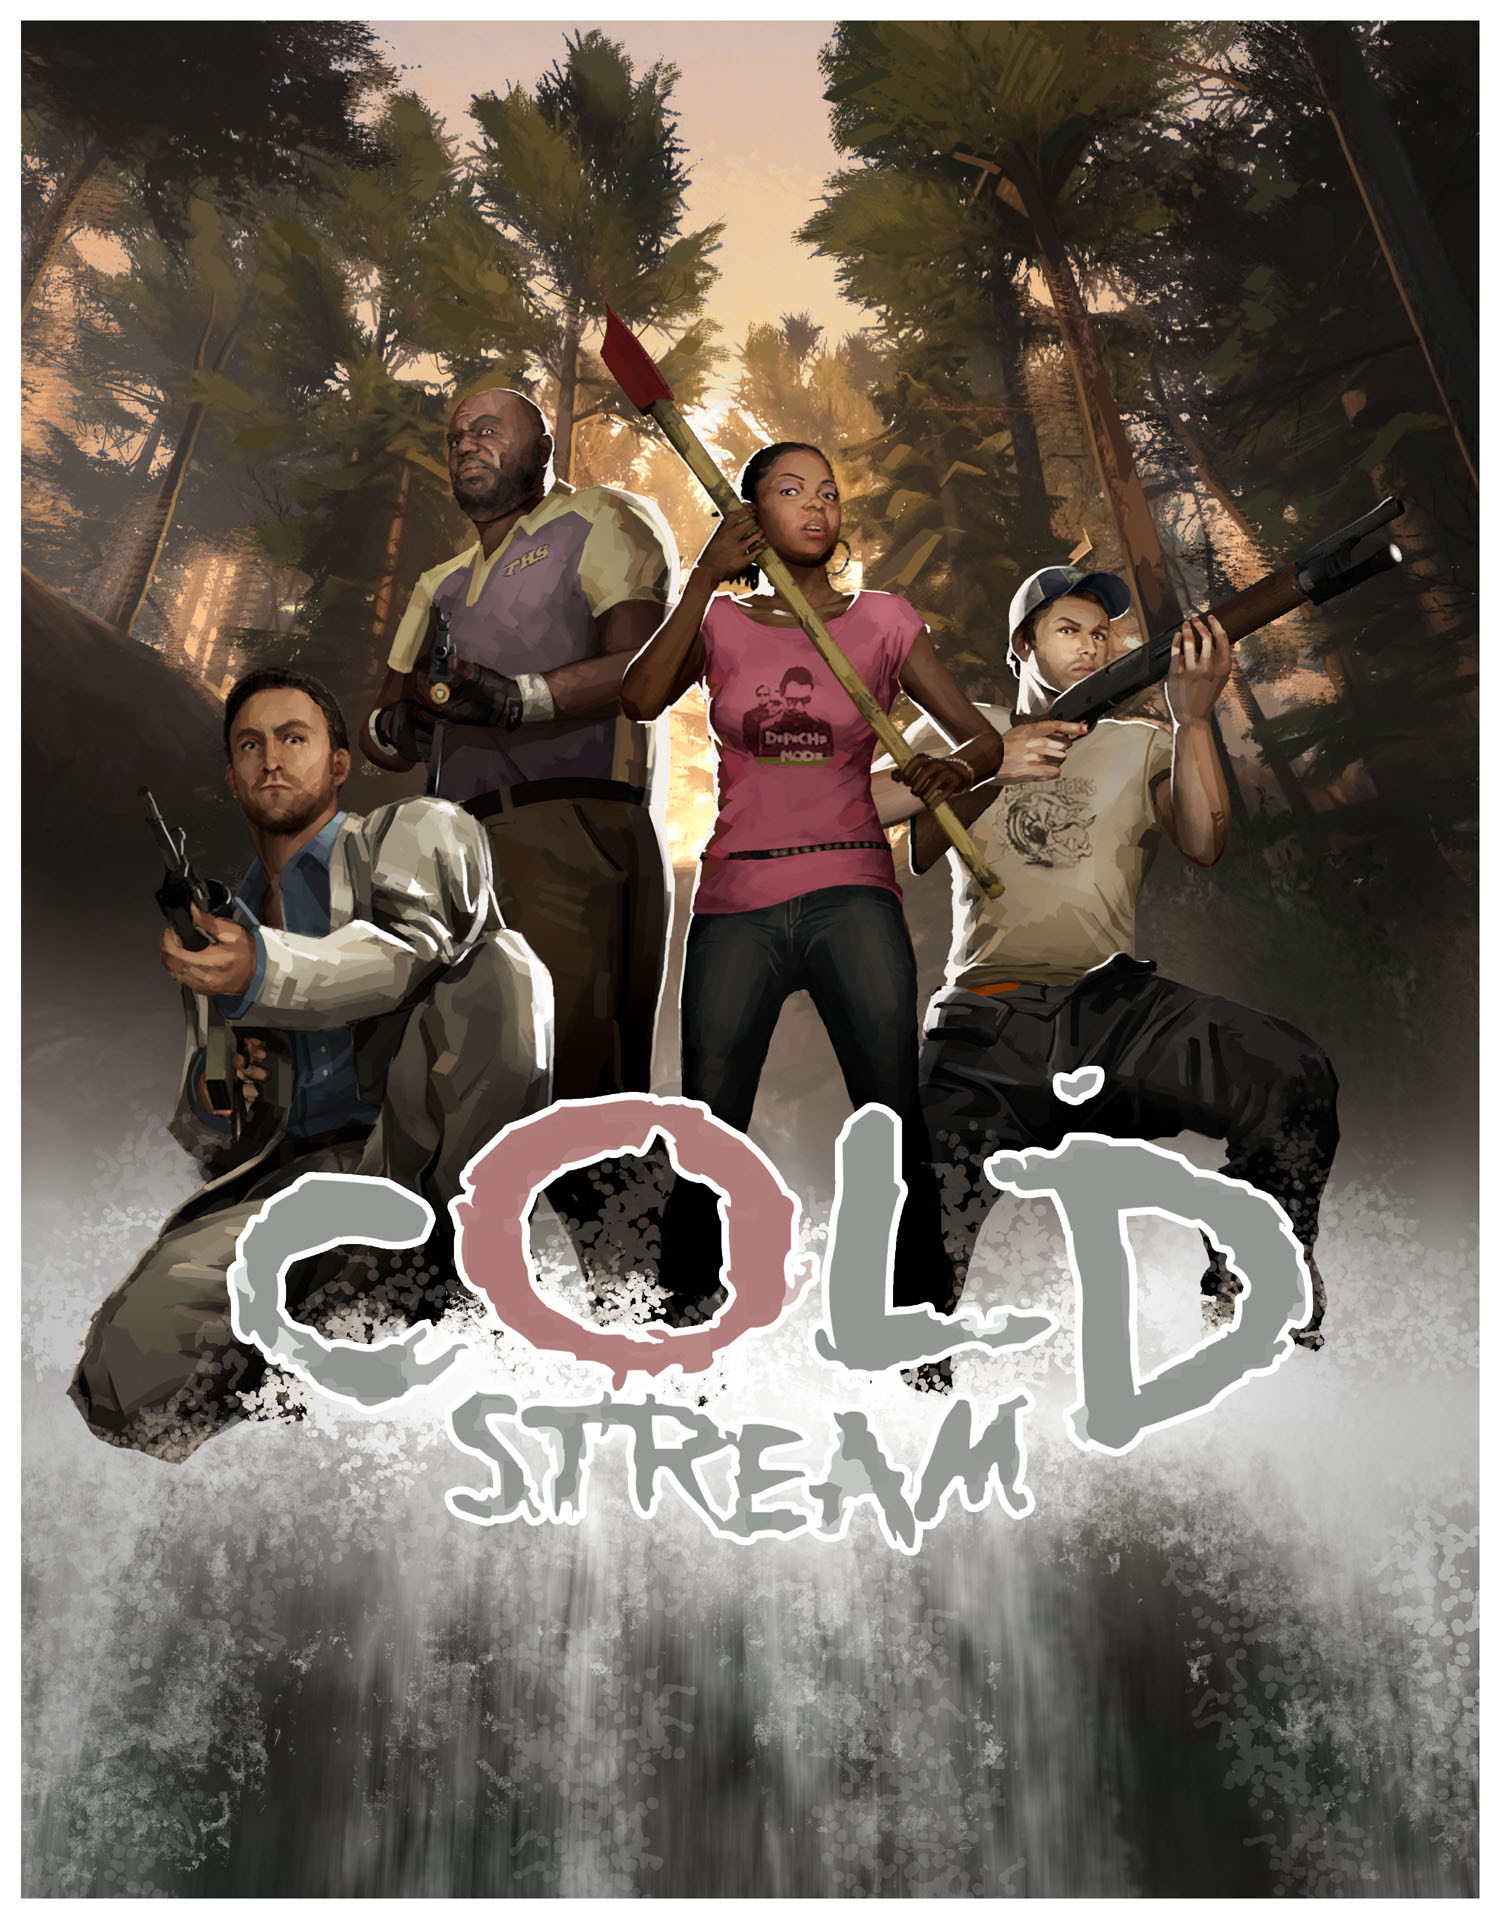 Cold Stream Poster - WIP by Urser